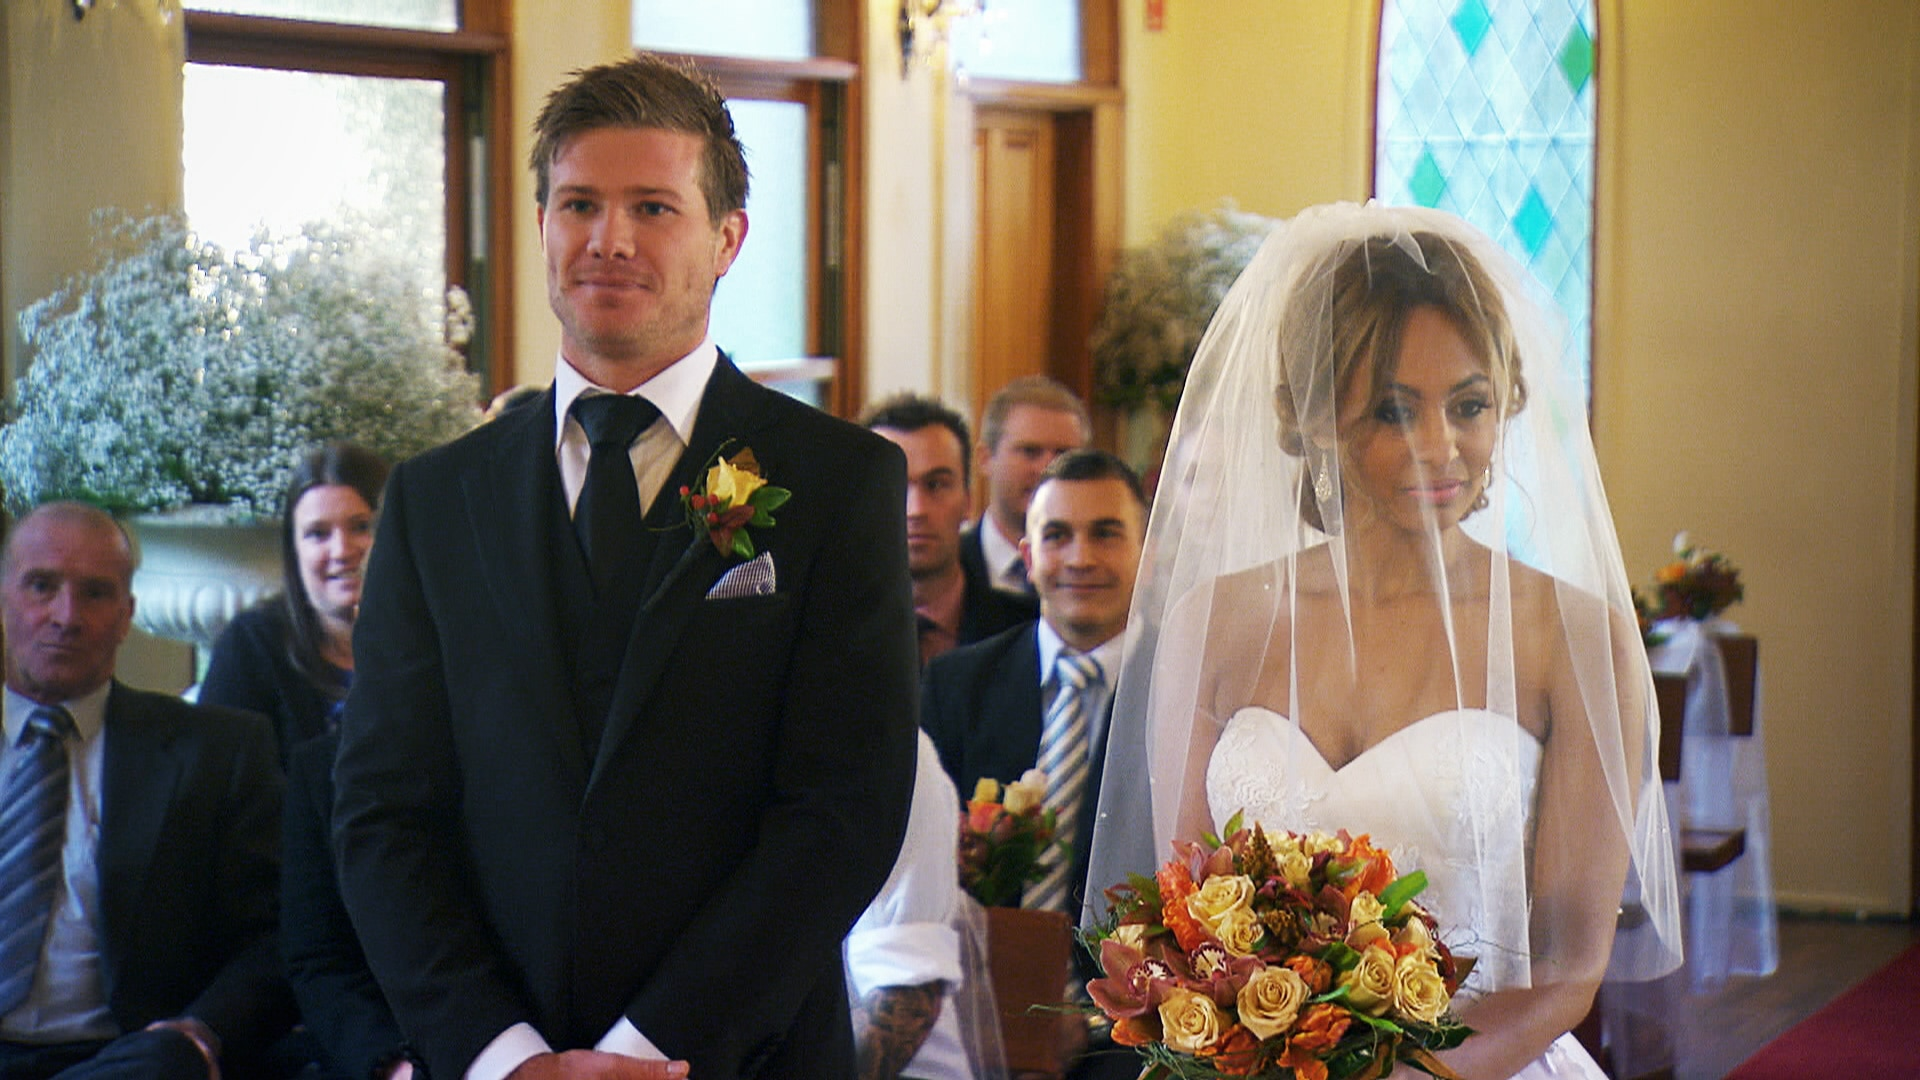 married at first sight australia season 5 - photo #13